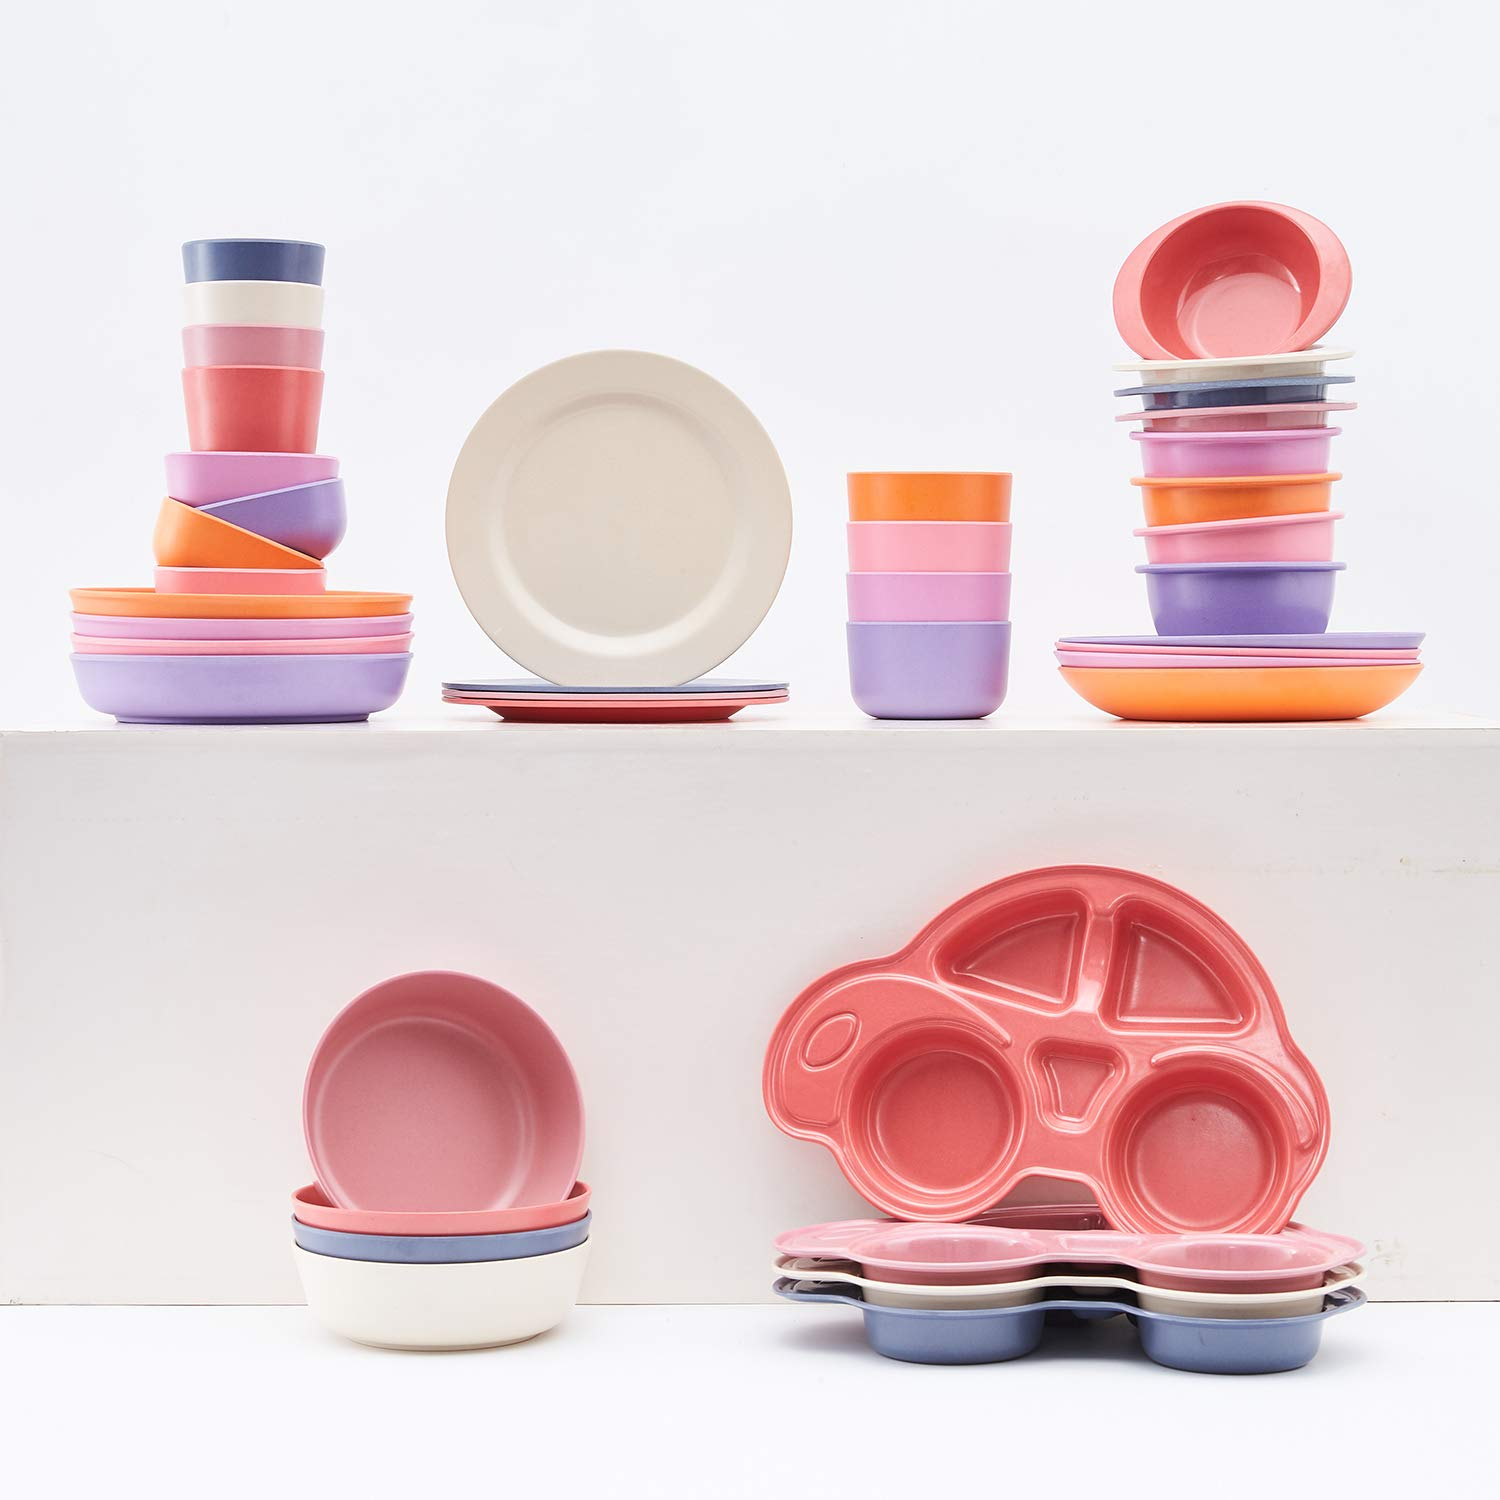 """Eco-Friendly Tableware for Baby Toddler Kids Bamboo Toddler Dishes /& Dinnerware Sets Non Toxic /& Safe Toddler Plates 4pcs Bamboo Kids Plates for Baby Feeding 8/"""" x 8/"""" x 1/"""""""